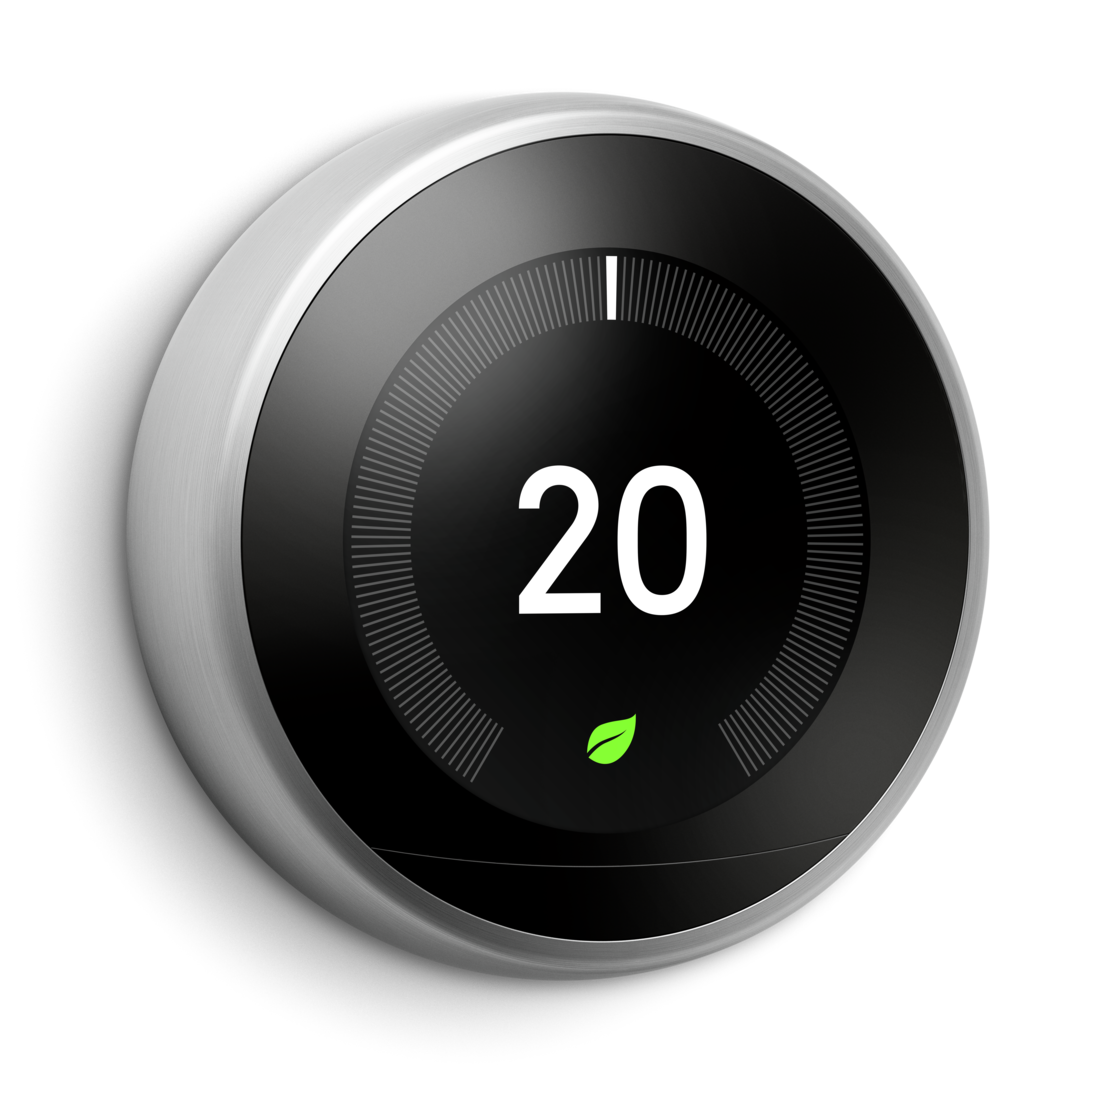 All You Need To Know About Google U0026 39 S Nest Thermostat